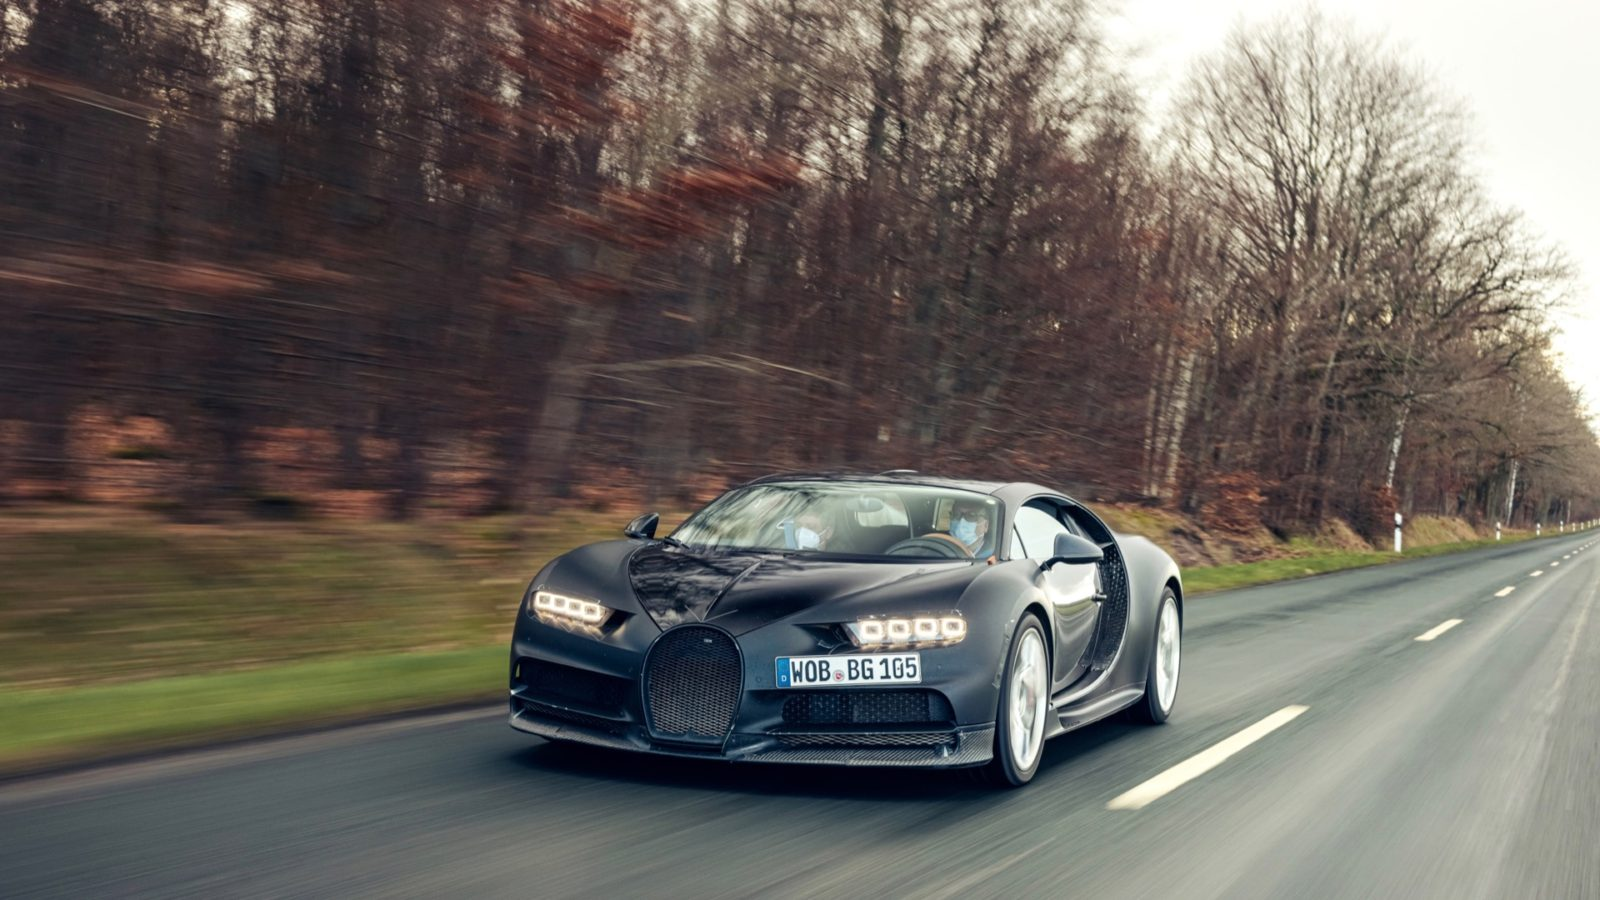 bugatti-beat-on-this-chiron-prototype-for-8-years-and-45,000-miles